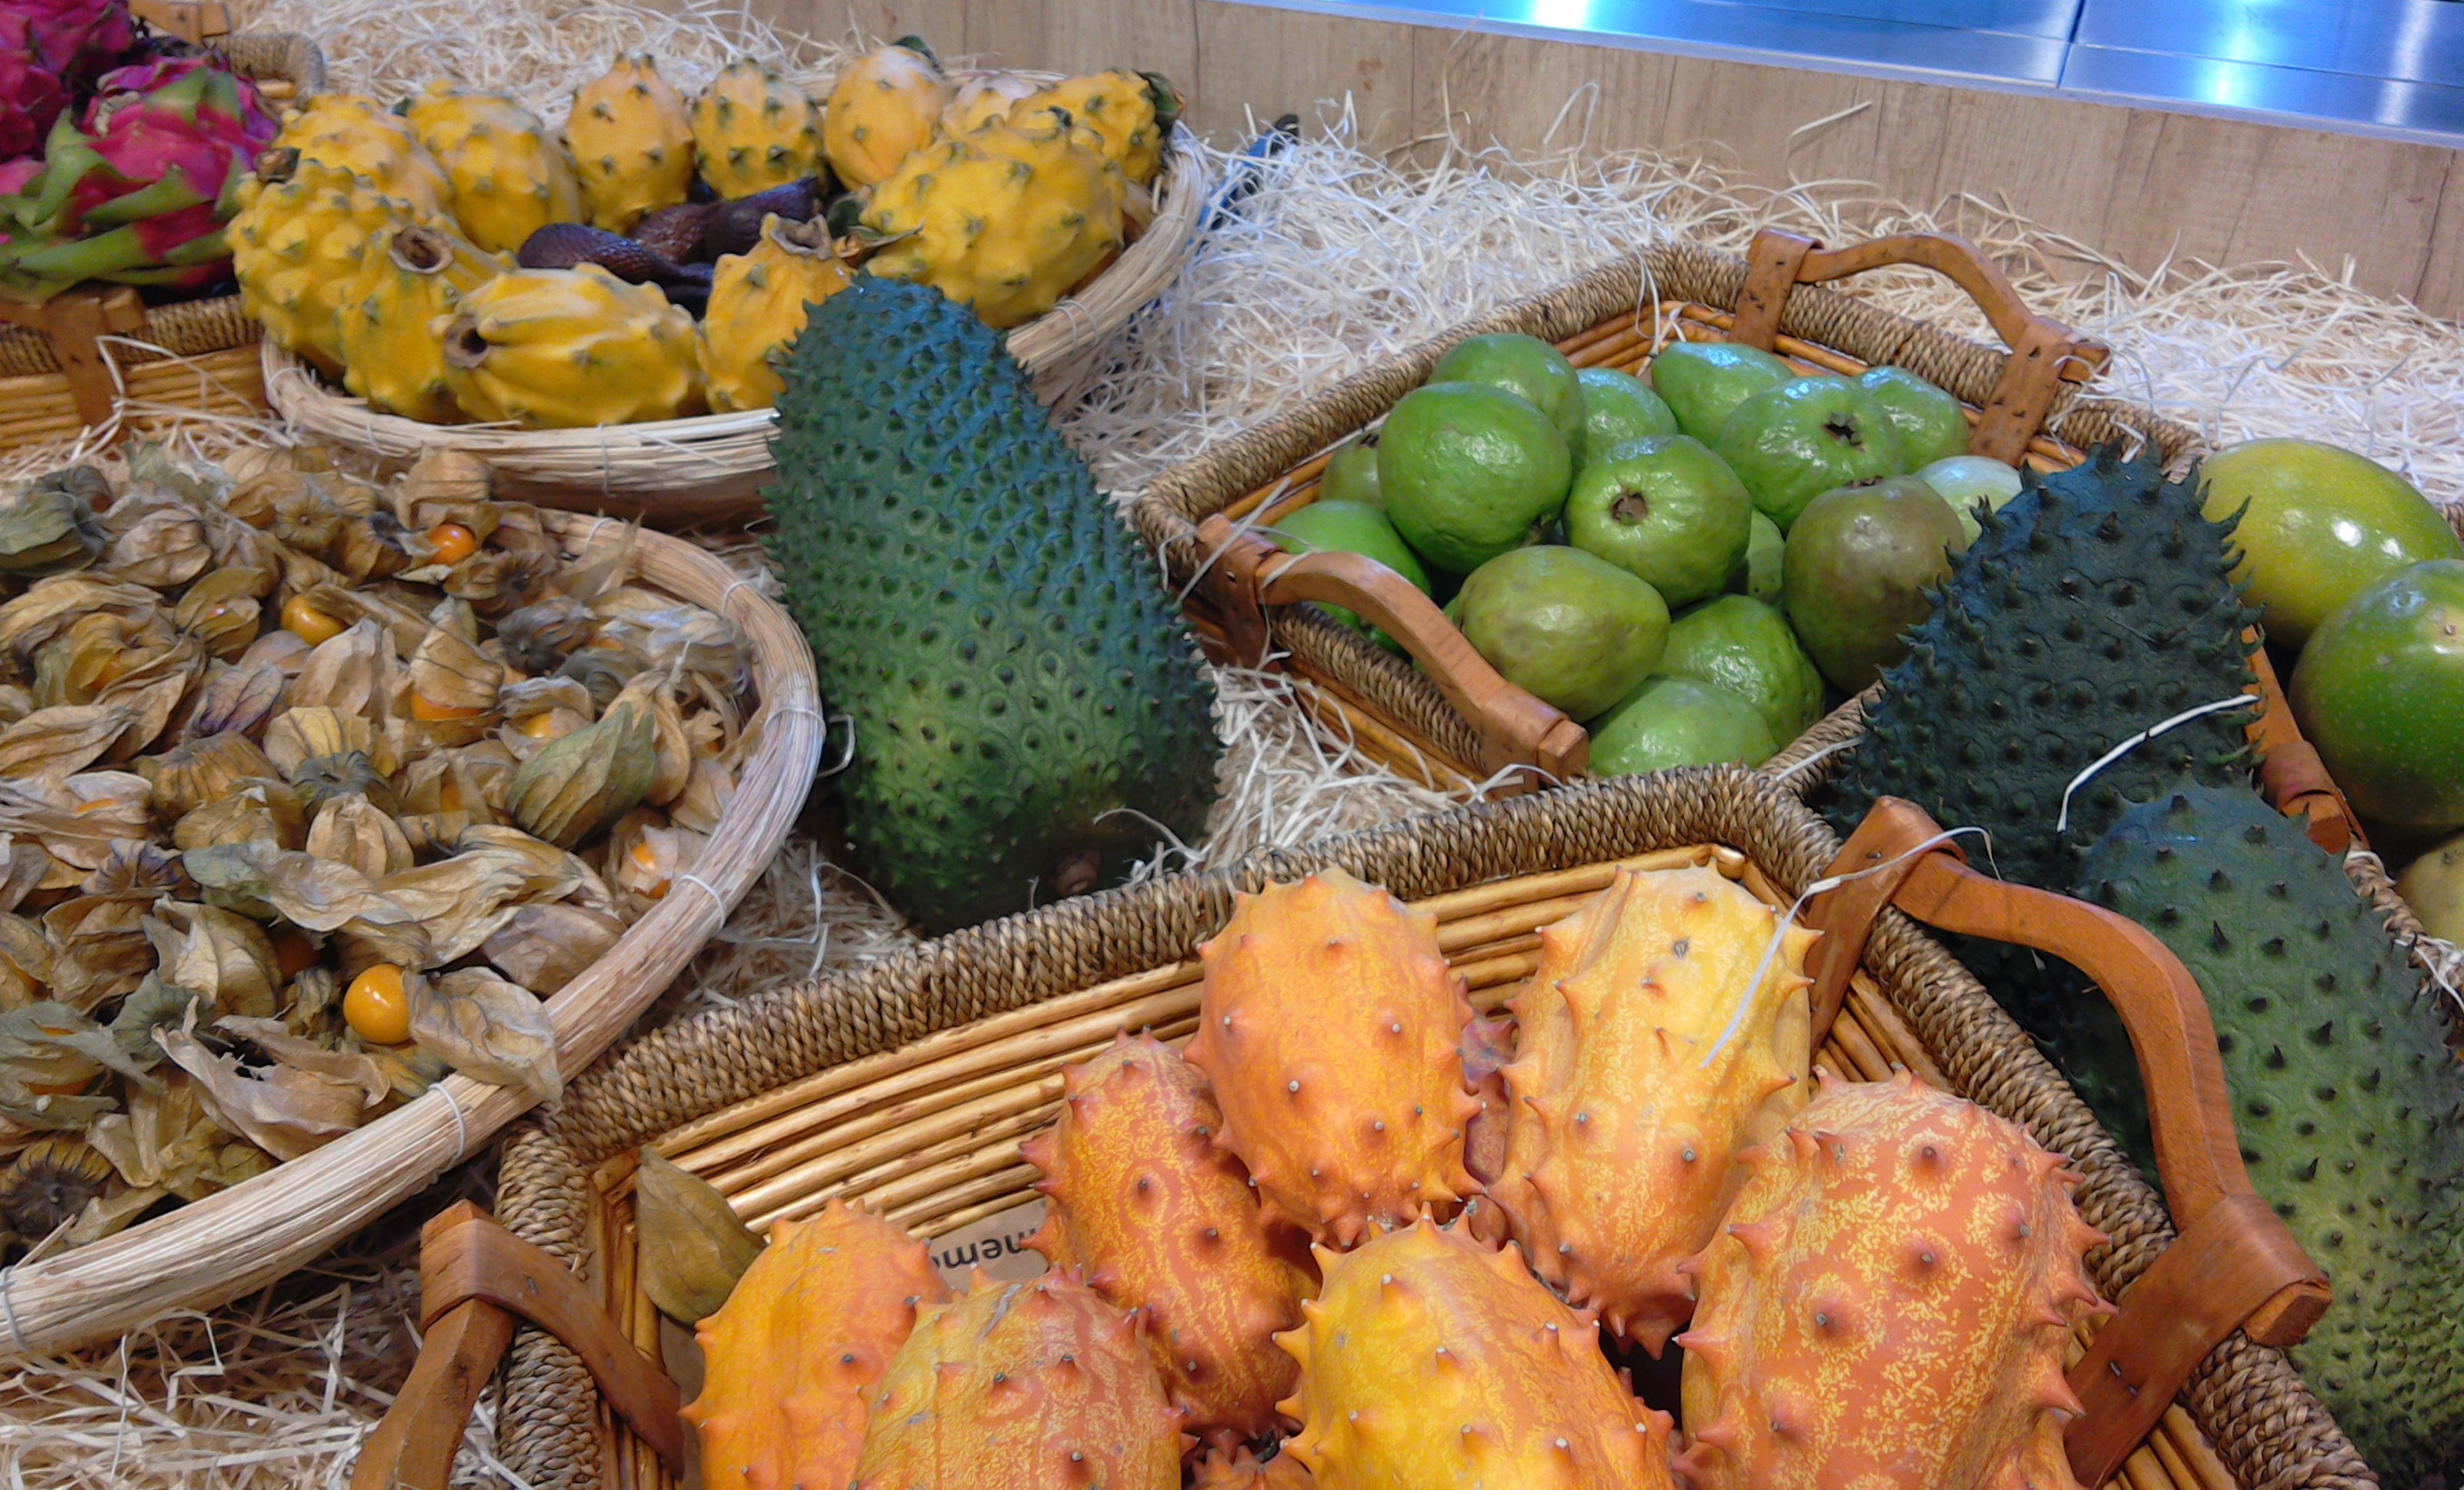 Exotic fruits for sale at Grand Frais, Caen, Normandy